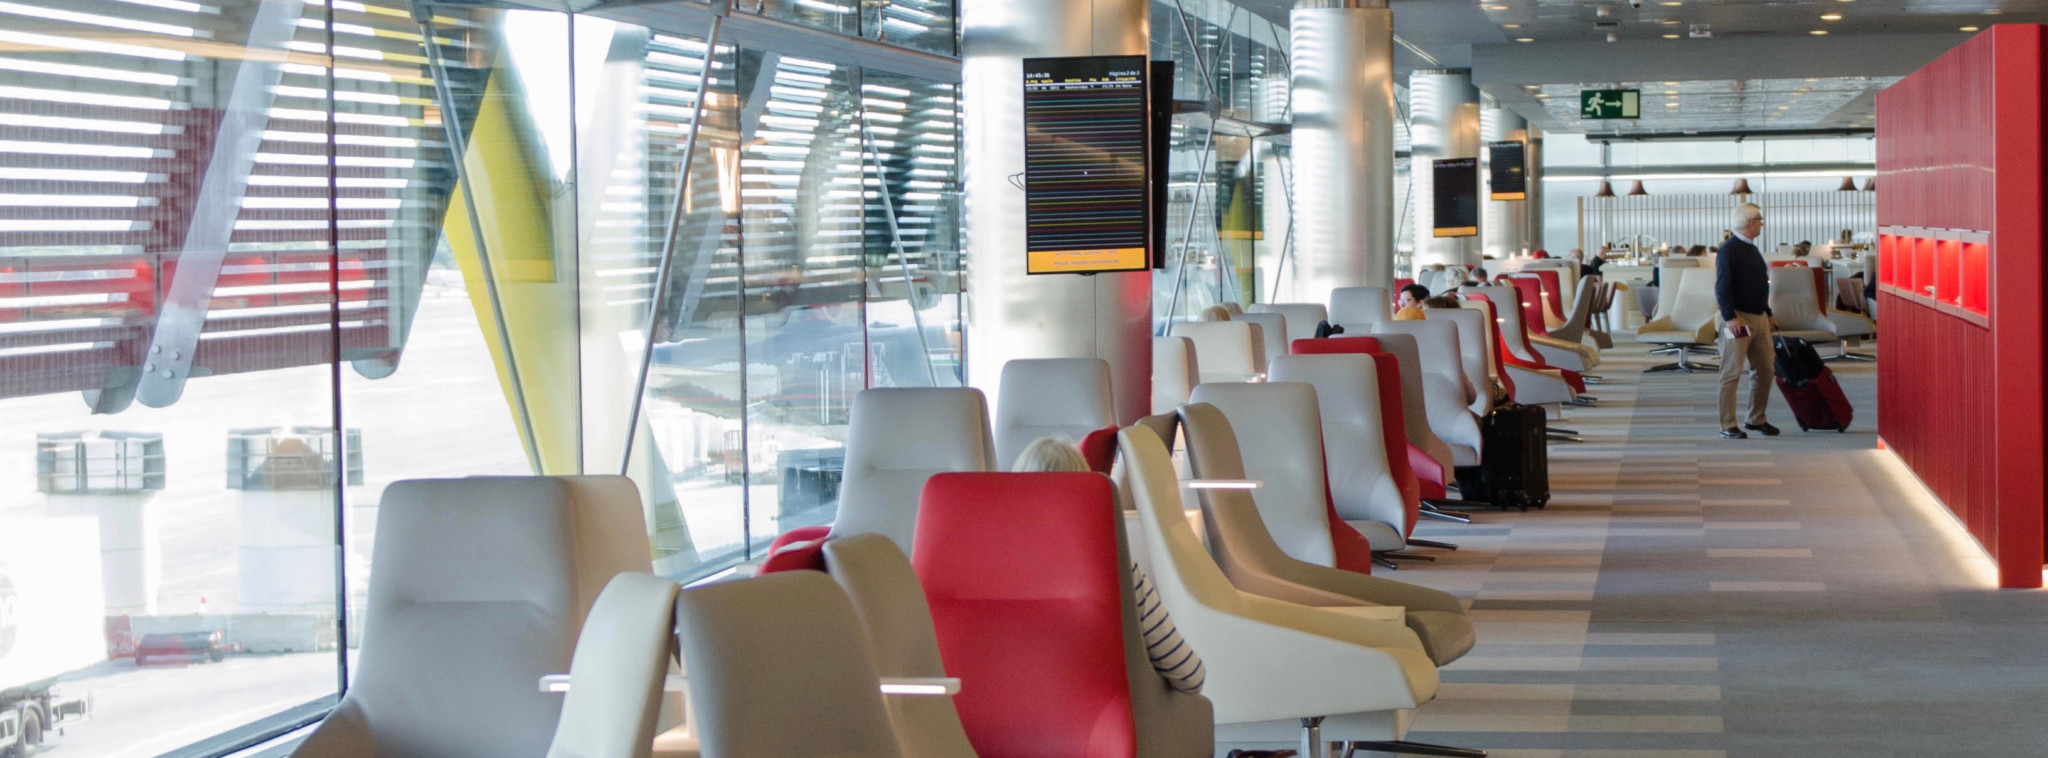 Iberia Business Class Lounge in Madrid